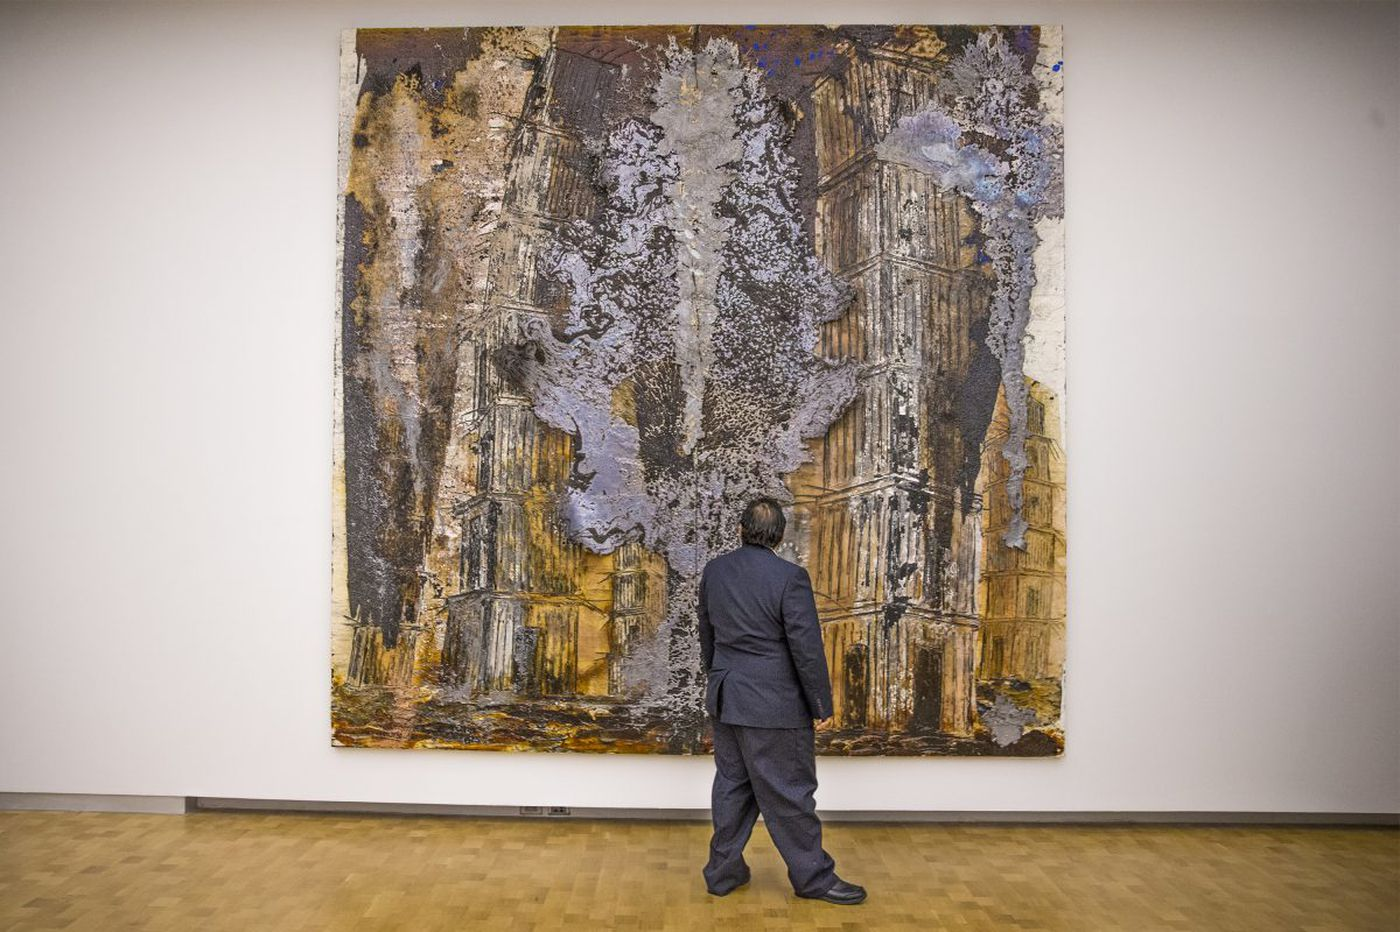 'Kiefer Rodin' exhibit at the Barnes Foundation is a thrilling and stimulating mash-up